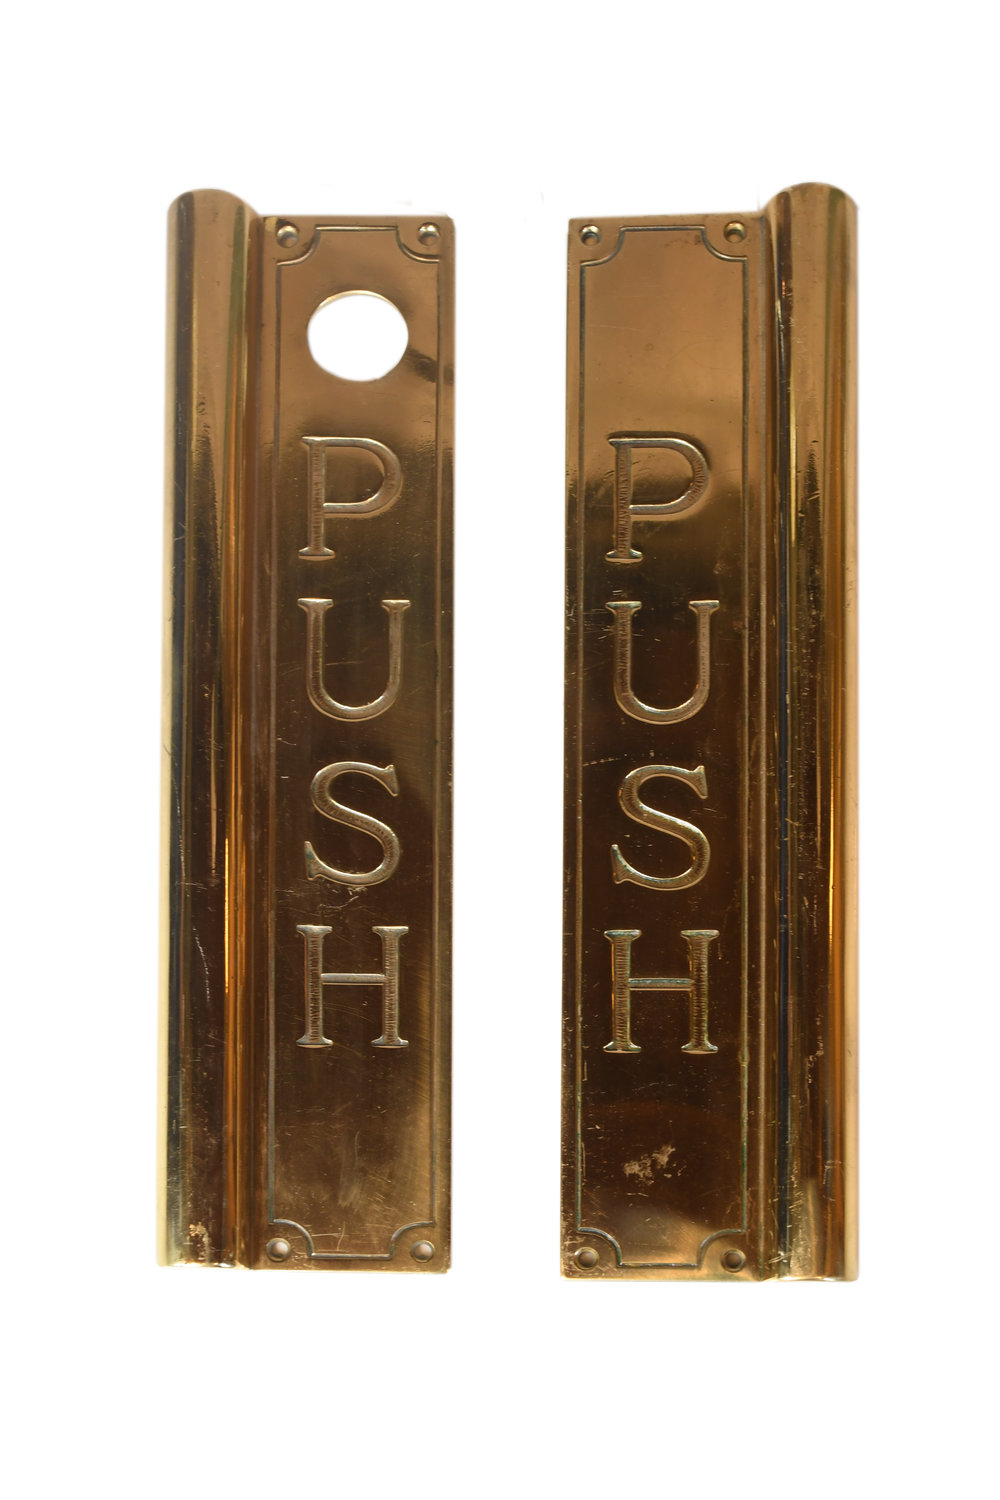 H20172-cast-brass-PUSH-plates-both-3.jpg